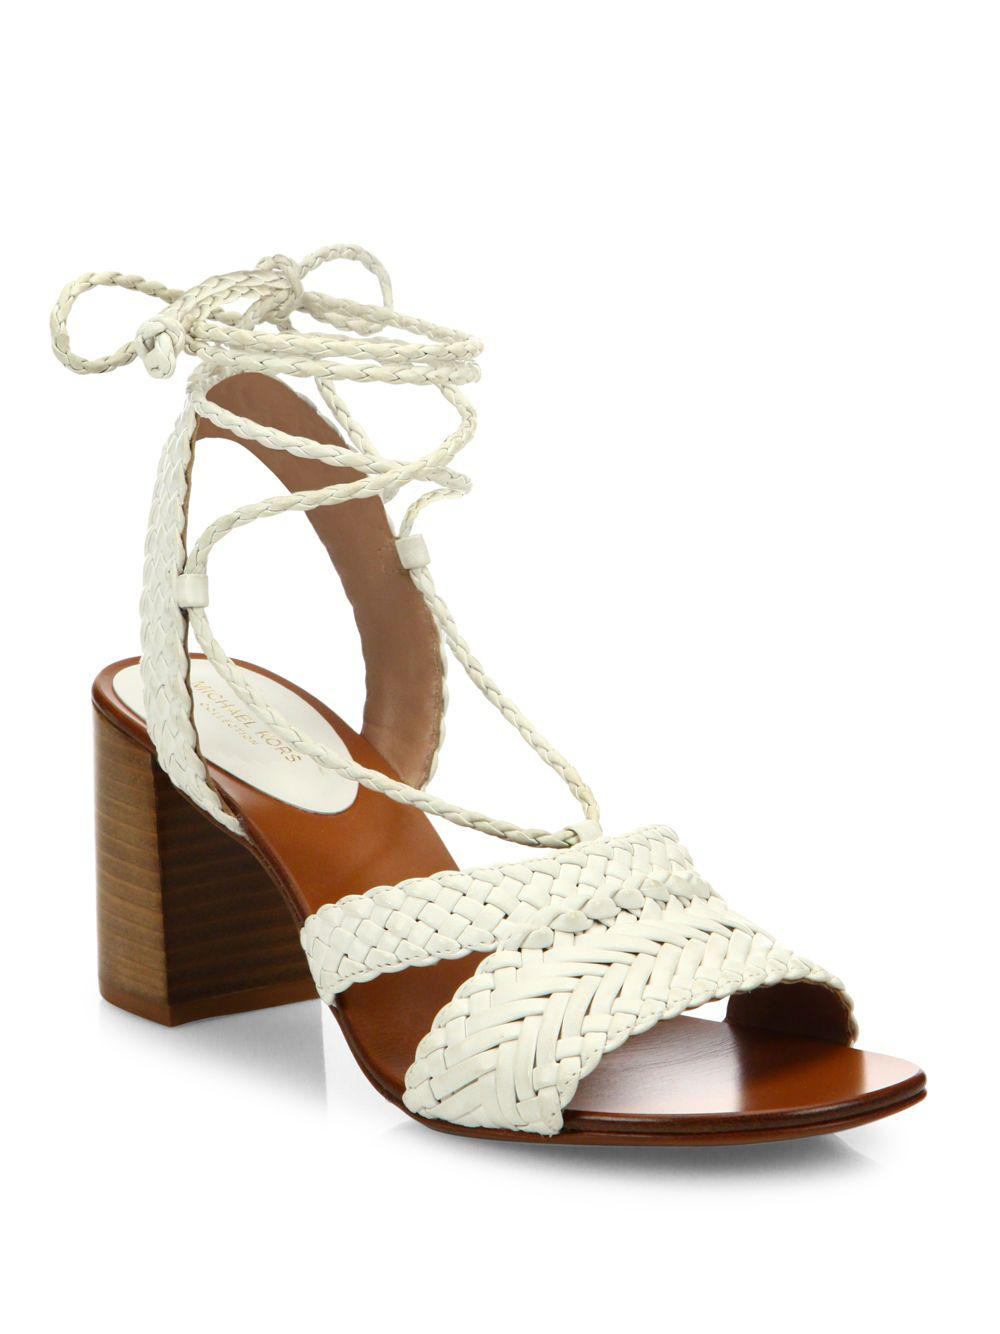 cd0af8a27d50 Michael Kors Lawson Leather Lace-up Sandals in White - Save 29% - Lyst